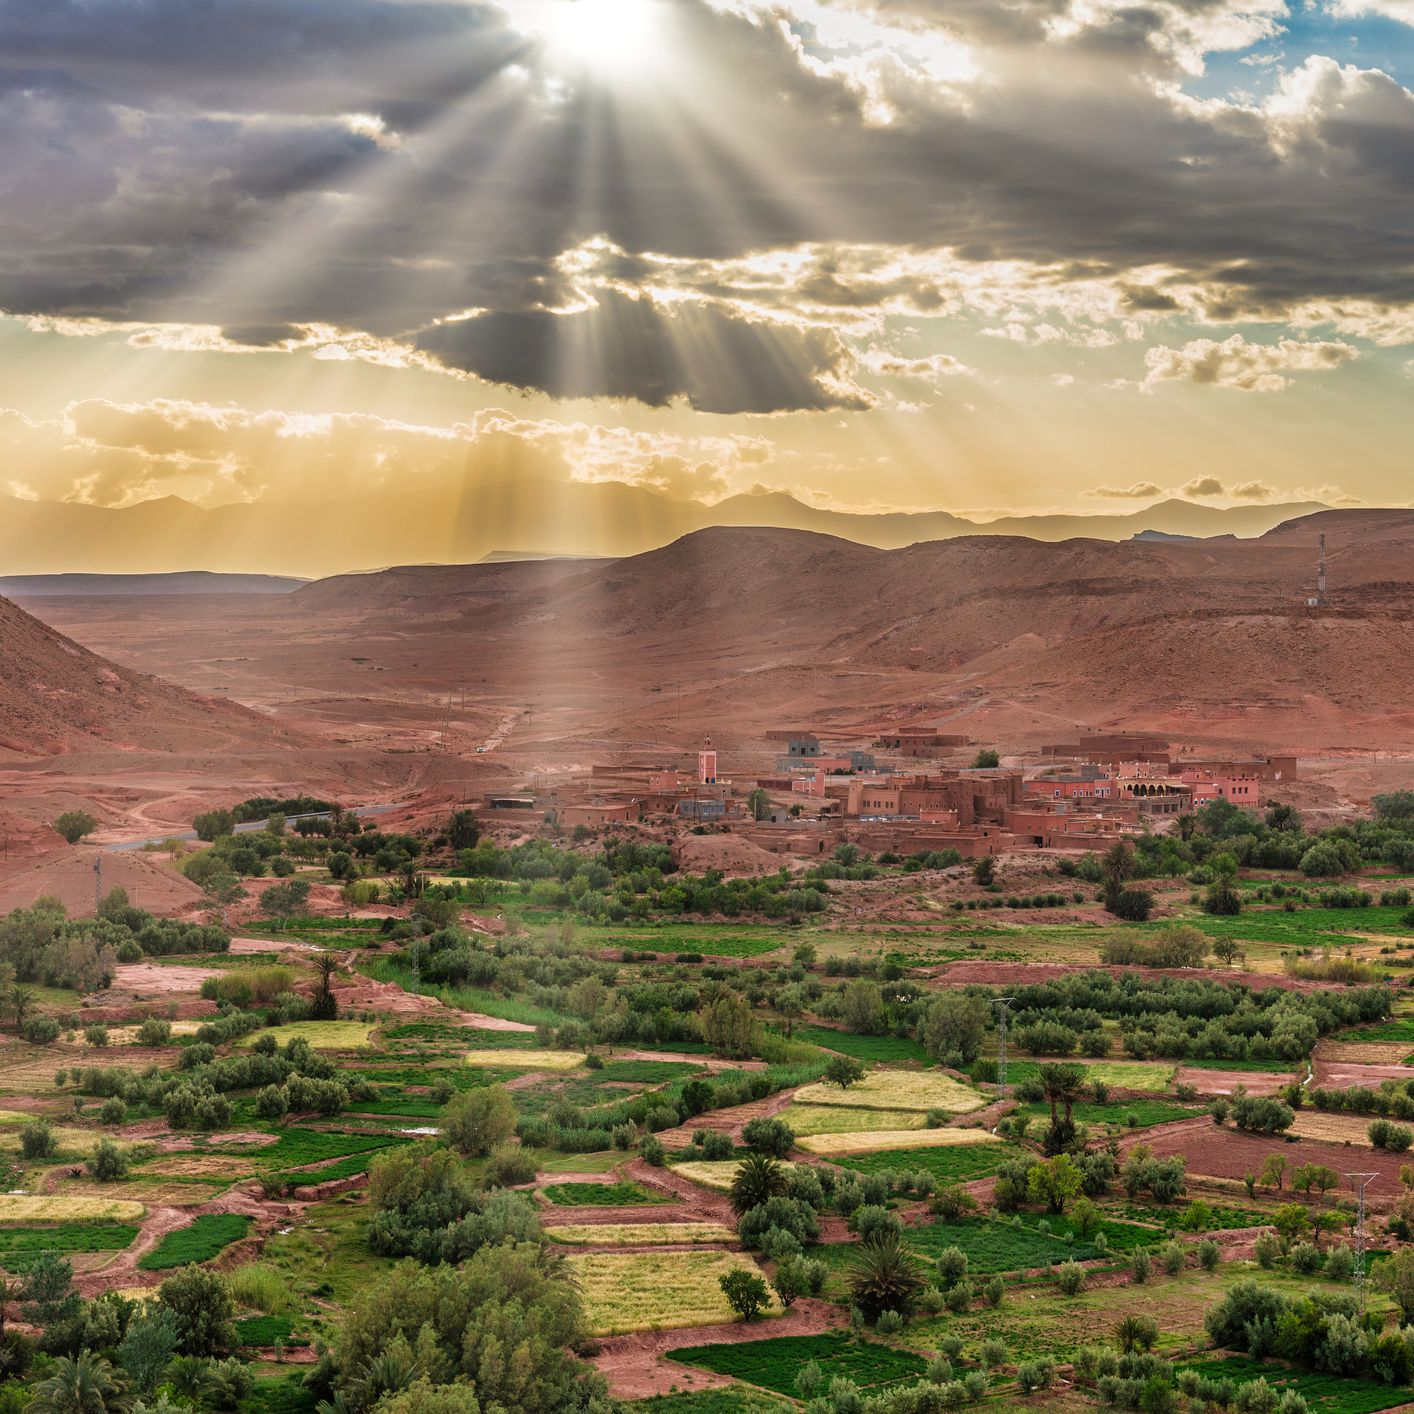 The 8 Top Things to Do in Ouarzazate, Morocco